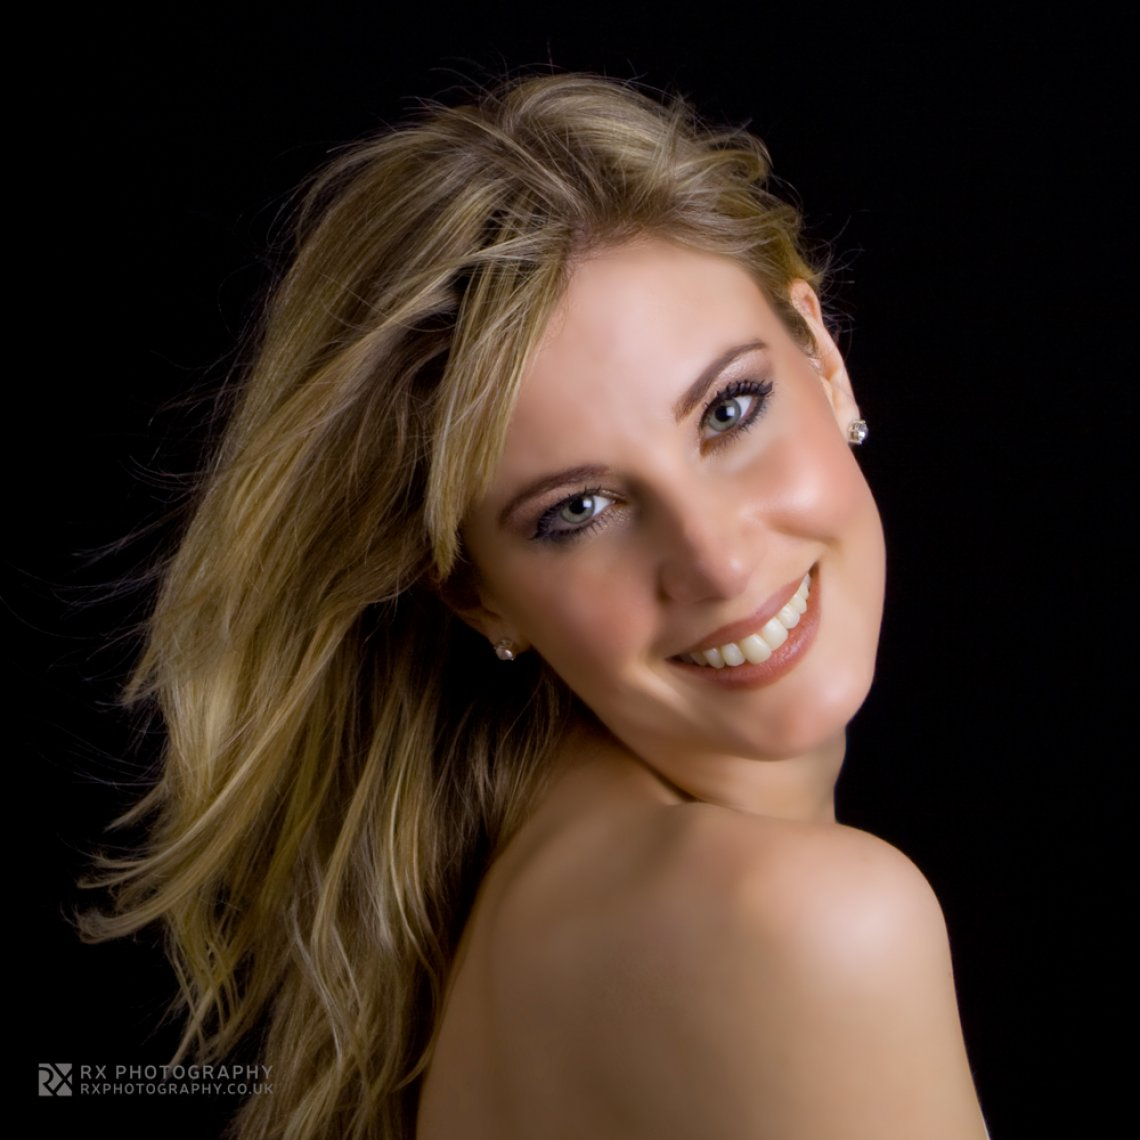 RX Photography - beautiful blonde woman looking over her shoulder